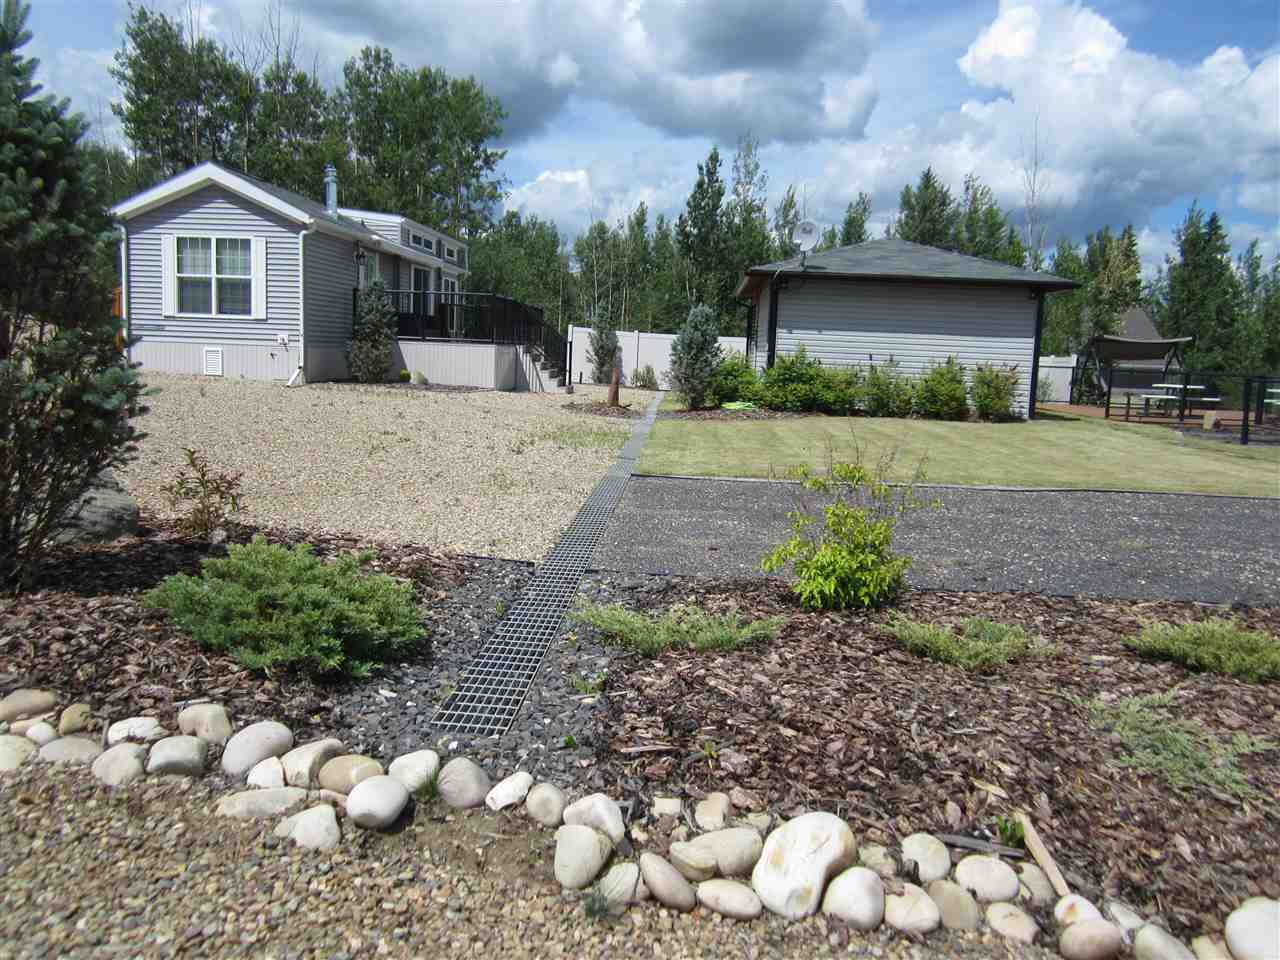 Main Photo: 604, 605 60501 Range Rd 120: Rural St. Paul County House for sale : MLS®# E4089584